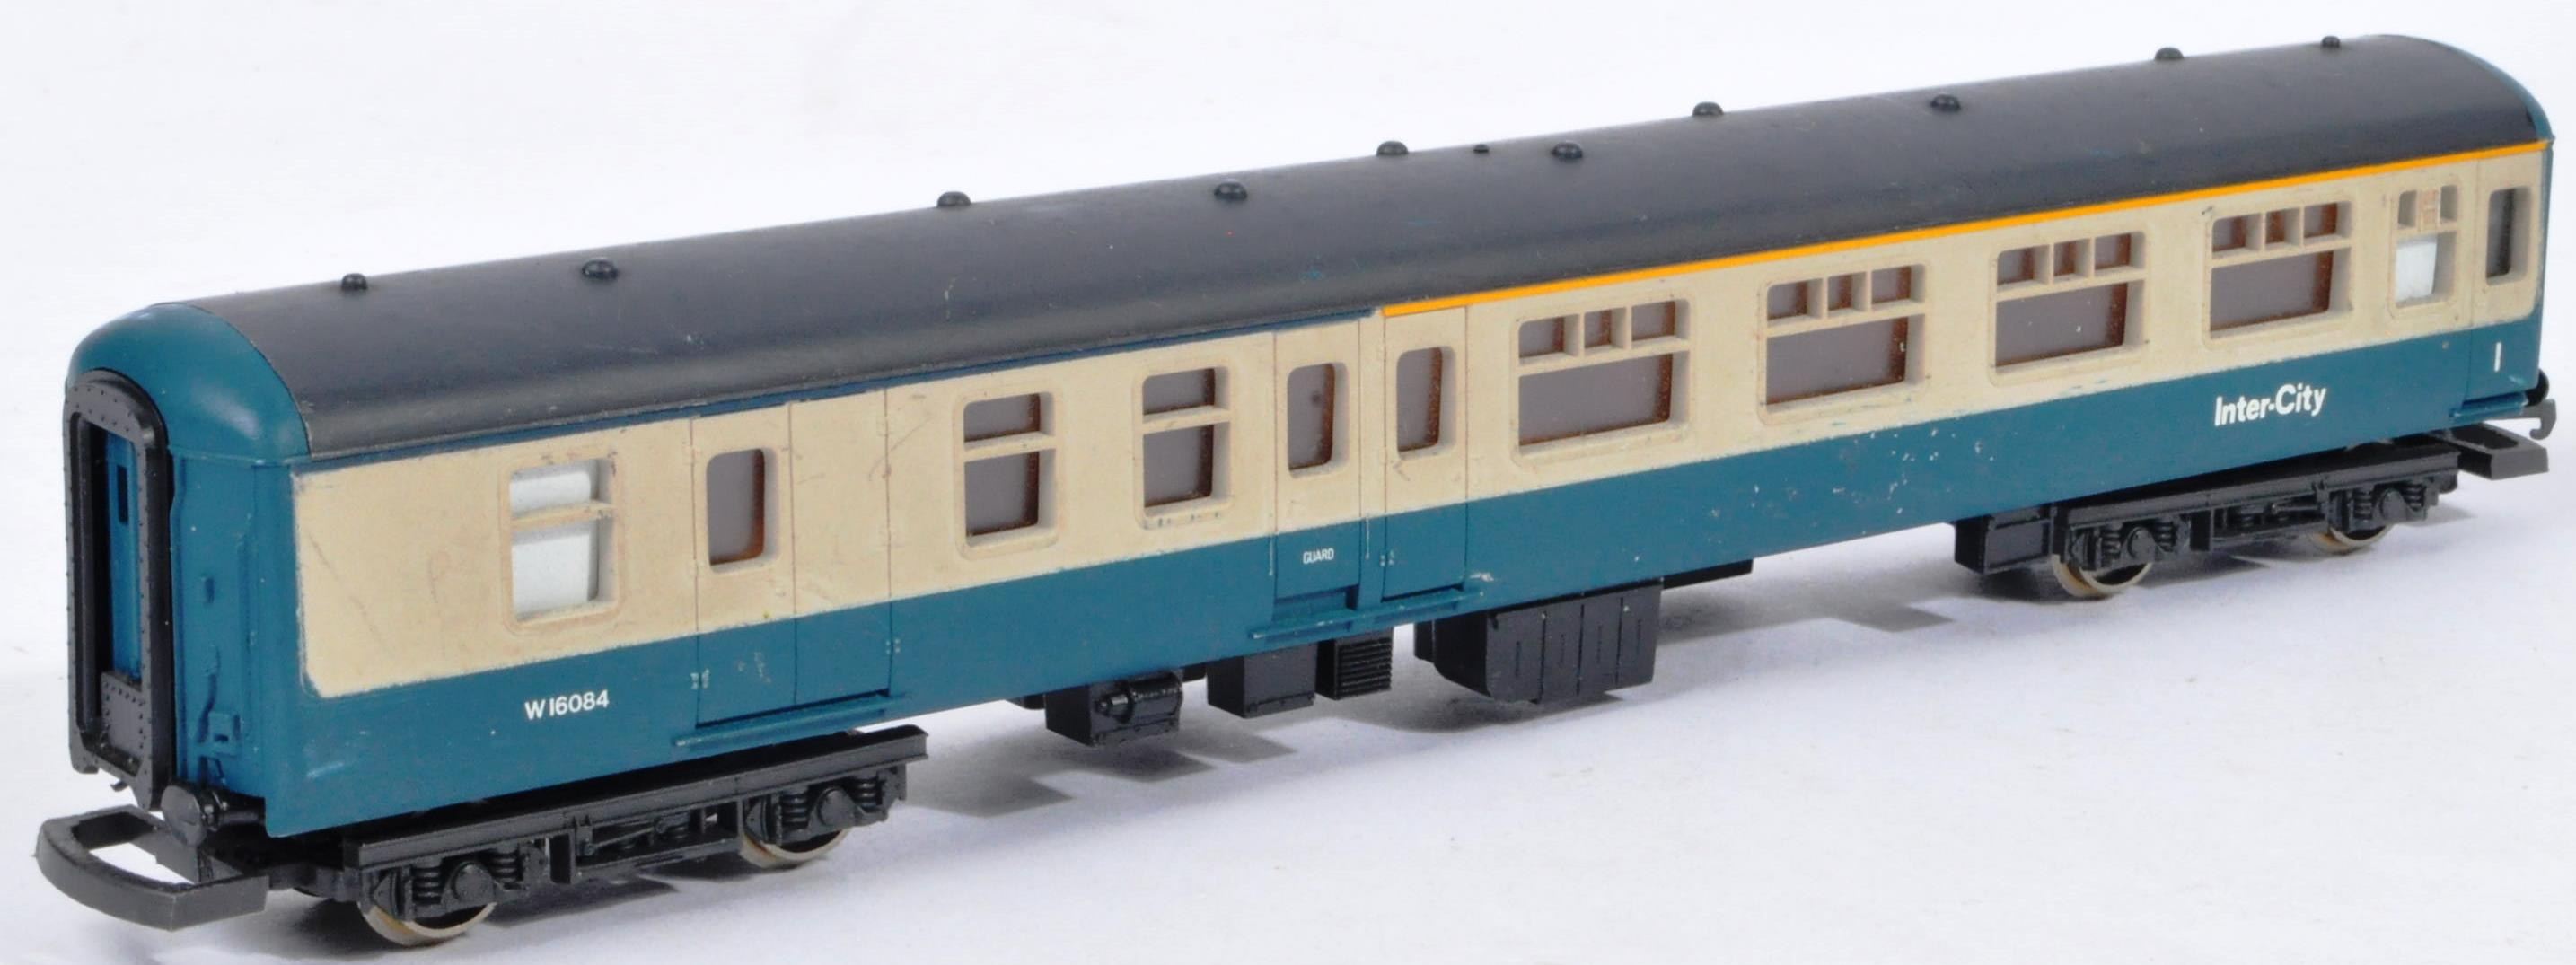 COLLECTION OF ASSORTED DIESEL 00 GAUGE TRAINSET LOCOMOTIVES & CARRIAGES - Image 10 of 10